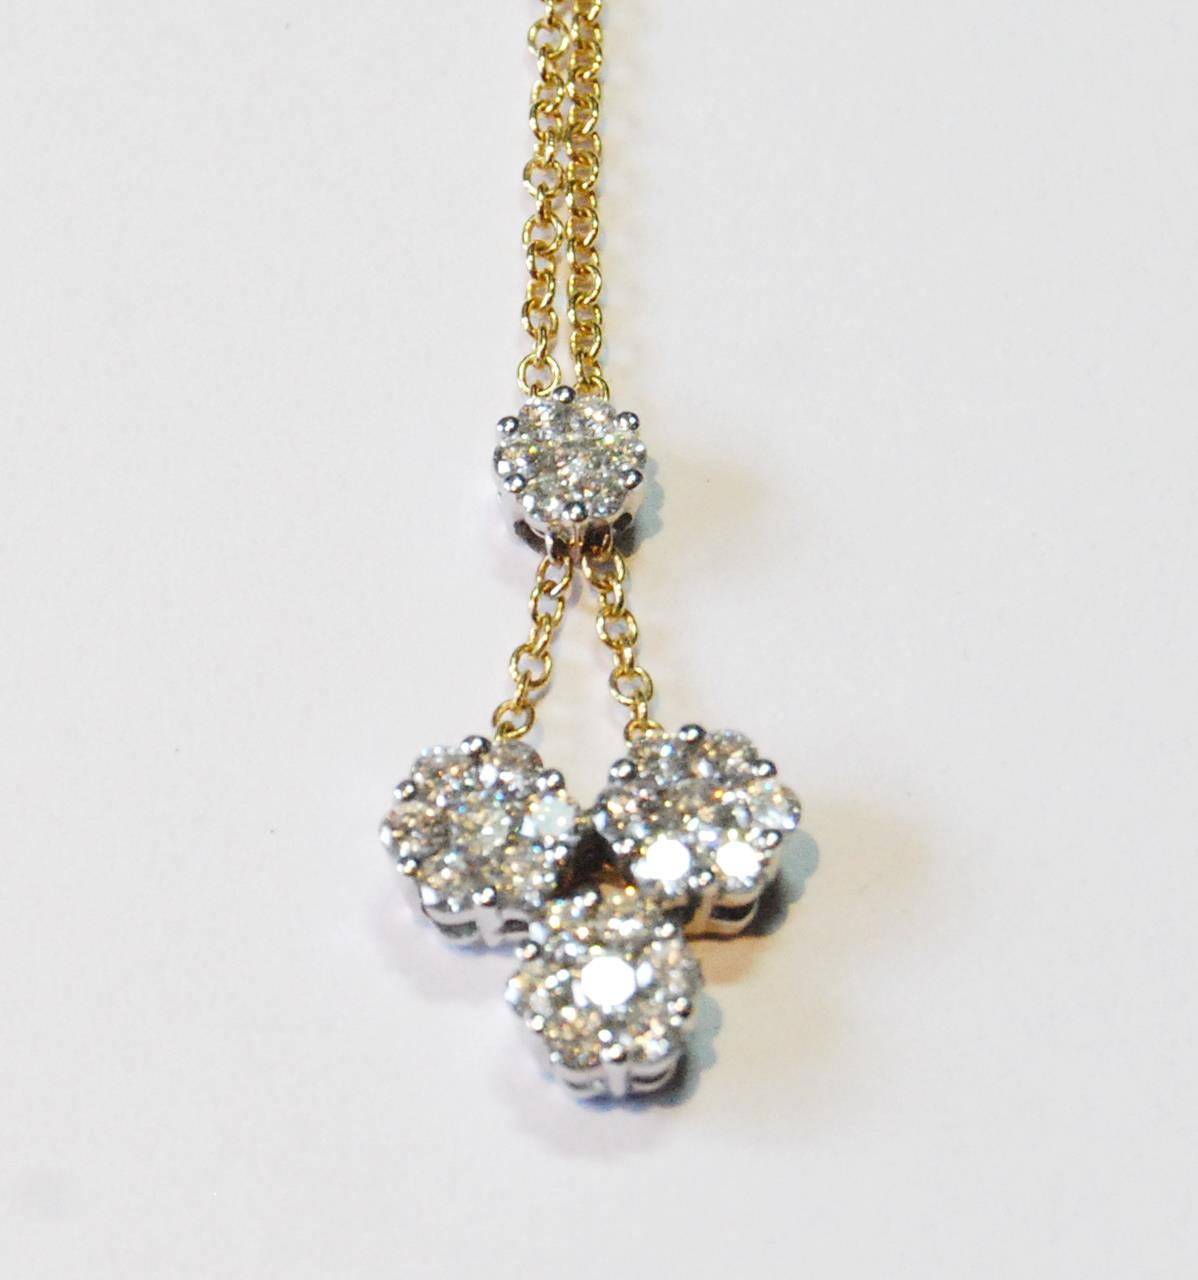 Diamond pendant with three clusters of seven brilliants dependent from another, smaller, in yellow